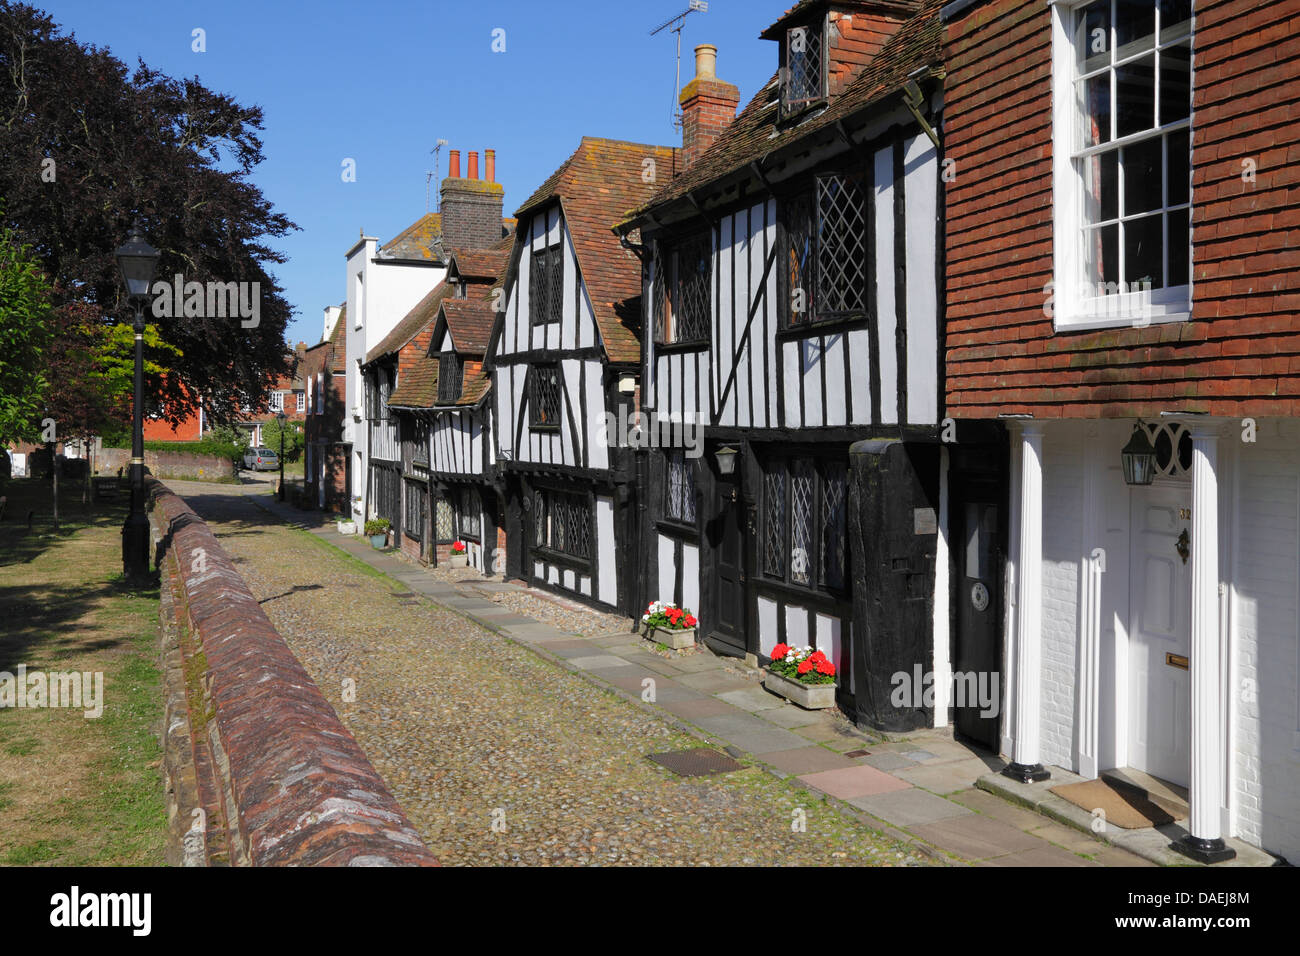 Medieval timber framed houses in Church Square, Rye East Sussex, England, UK, GB - Stock Image